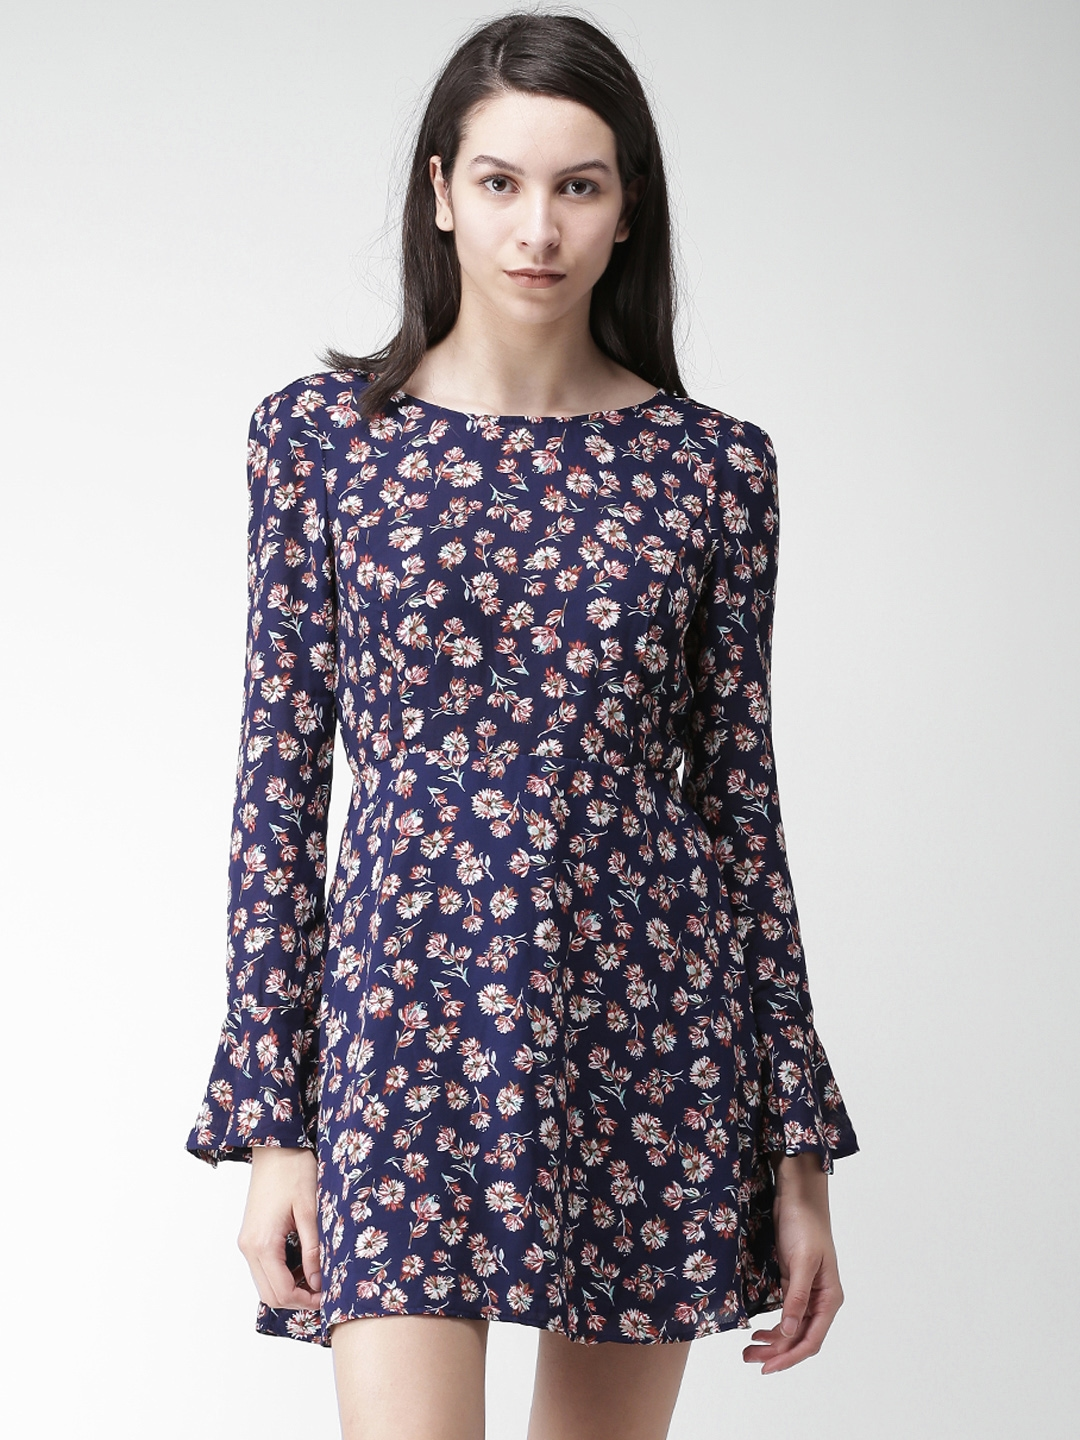 54eef512bfa6 Buy FOREVER 21 Women Navy Blue Printed Fit And Flare Dress - Dresses ...